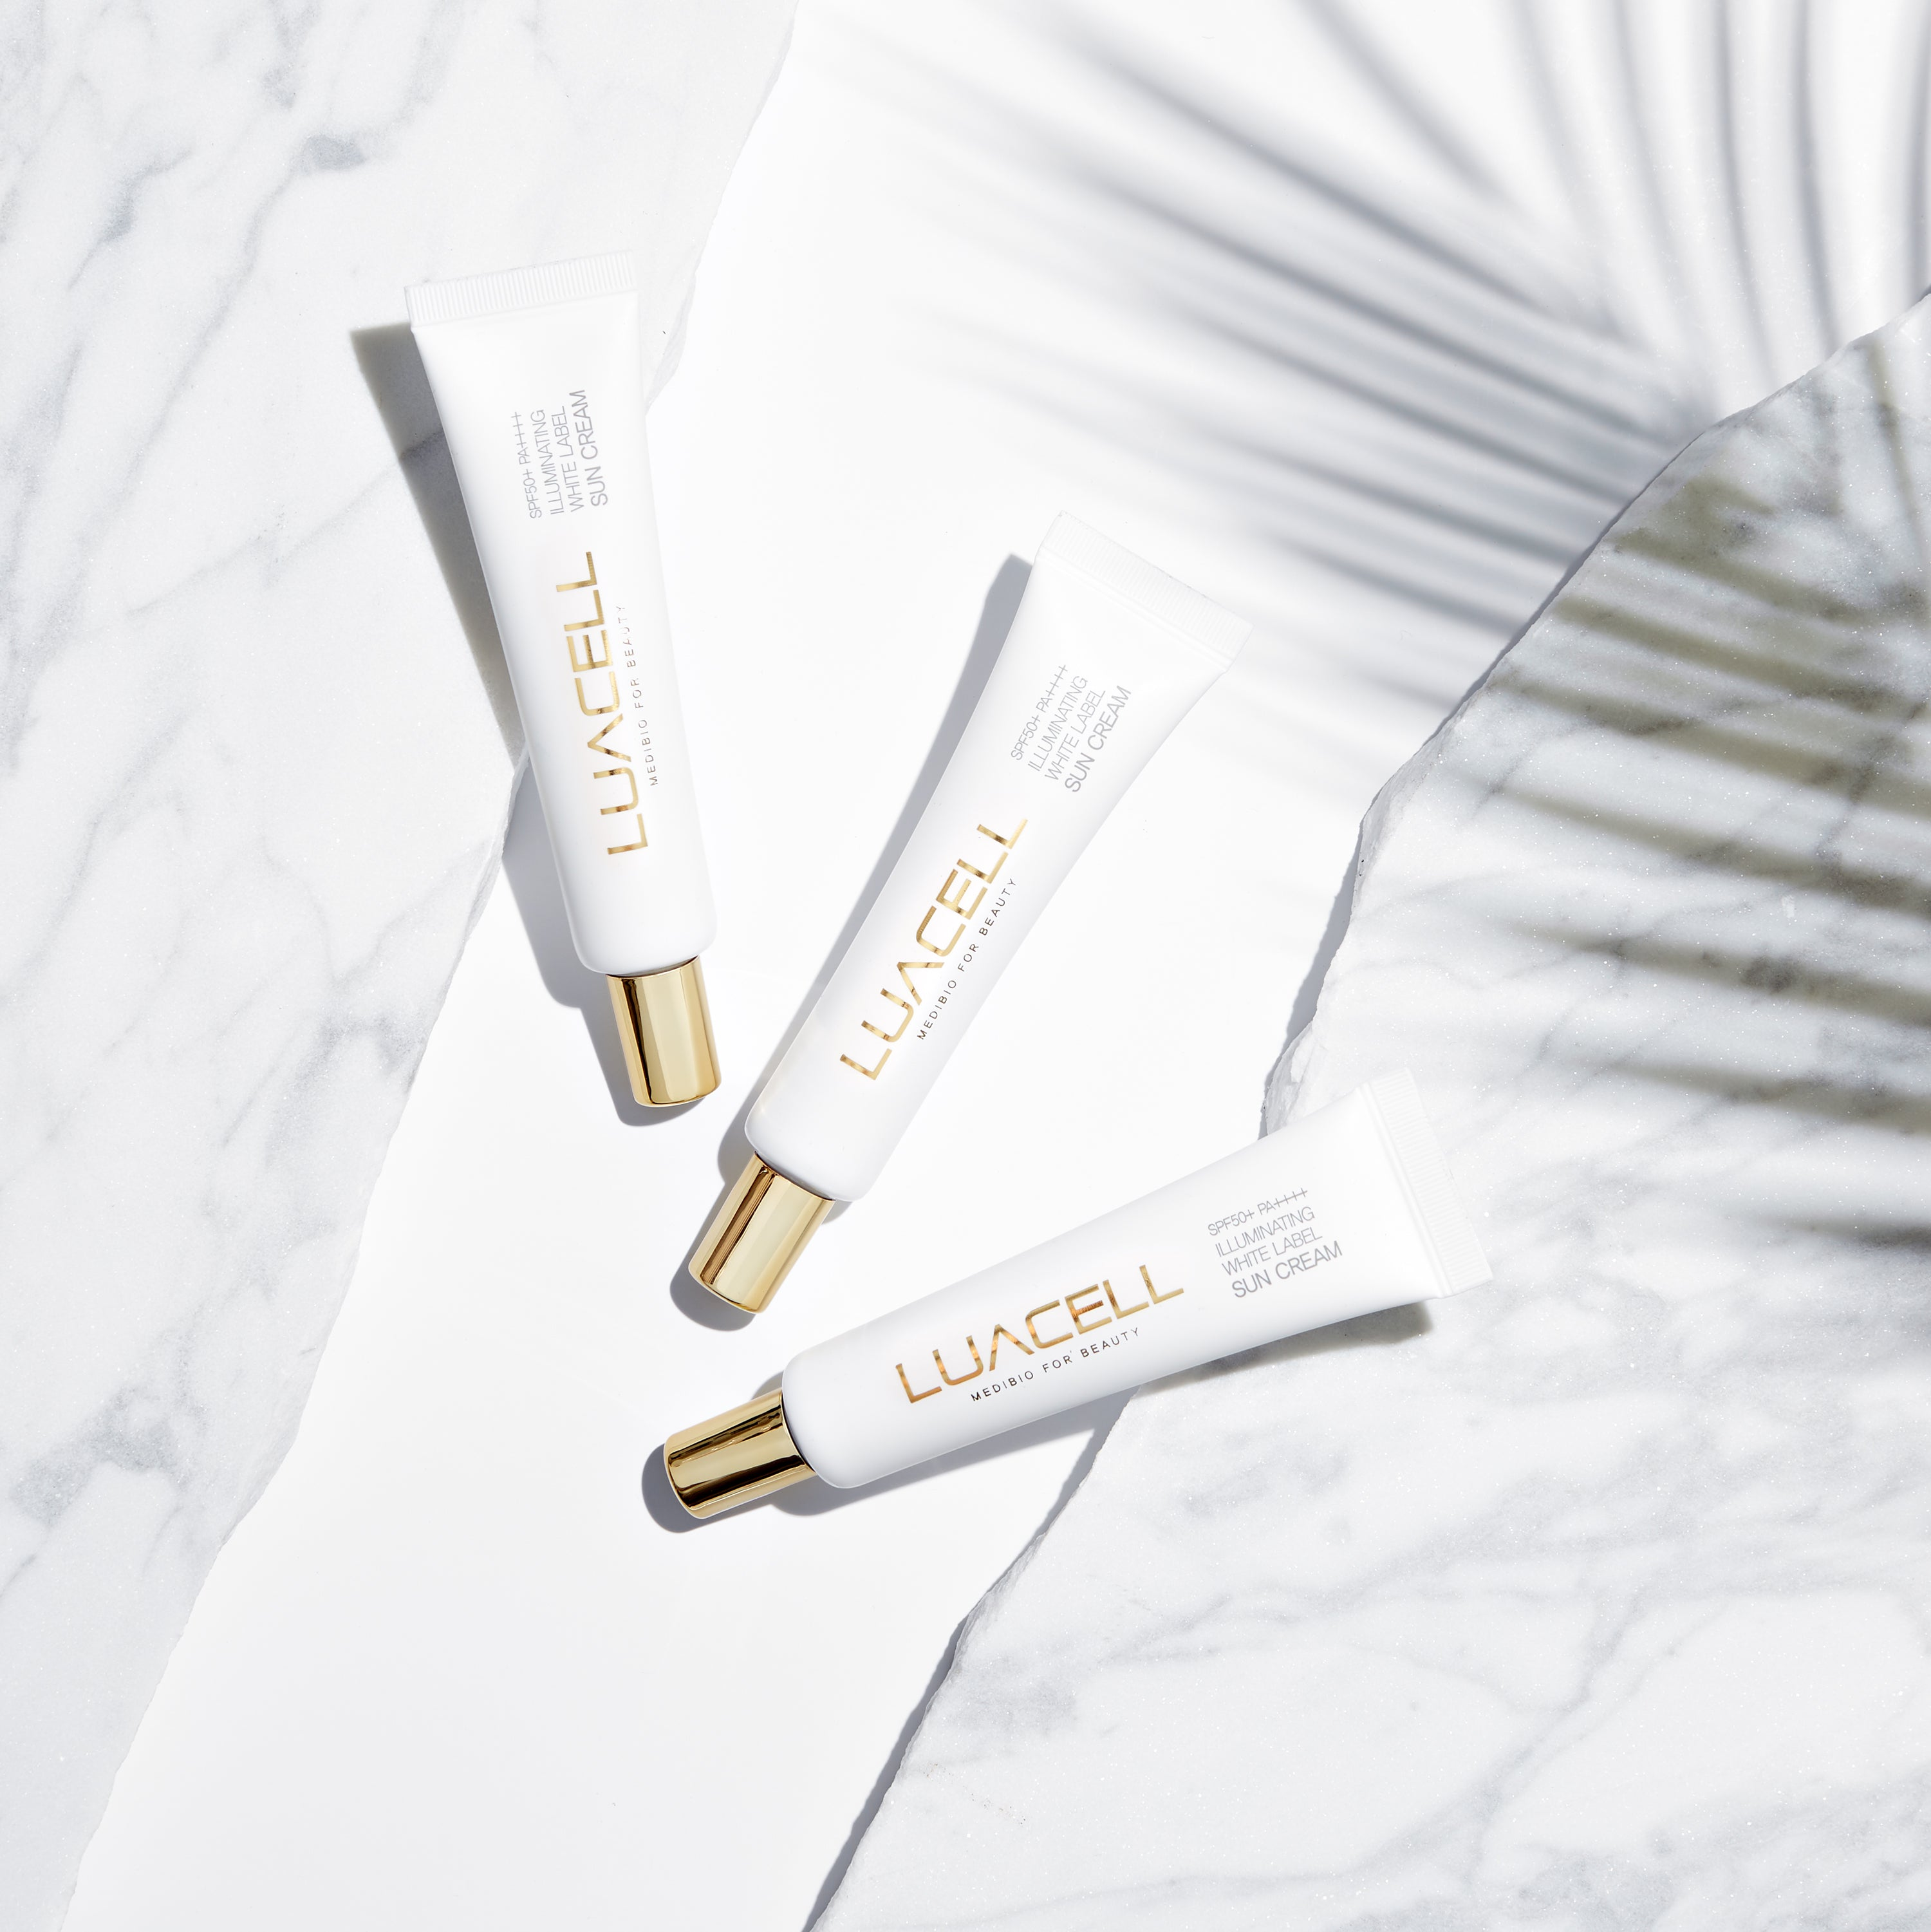 Luacell Human Stem Cell Extra Sunscreen